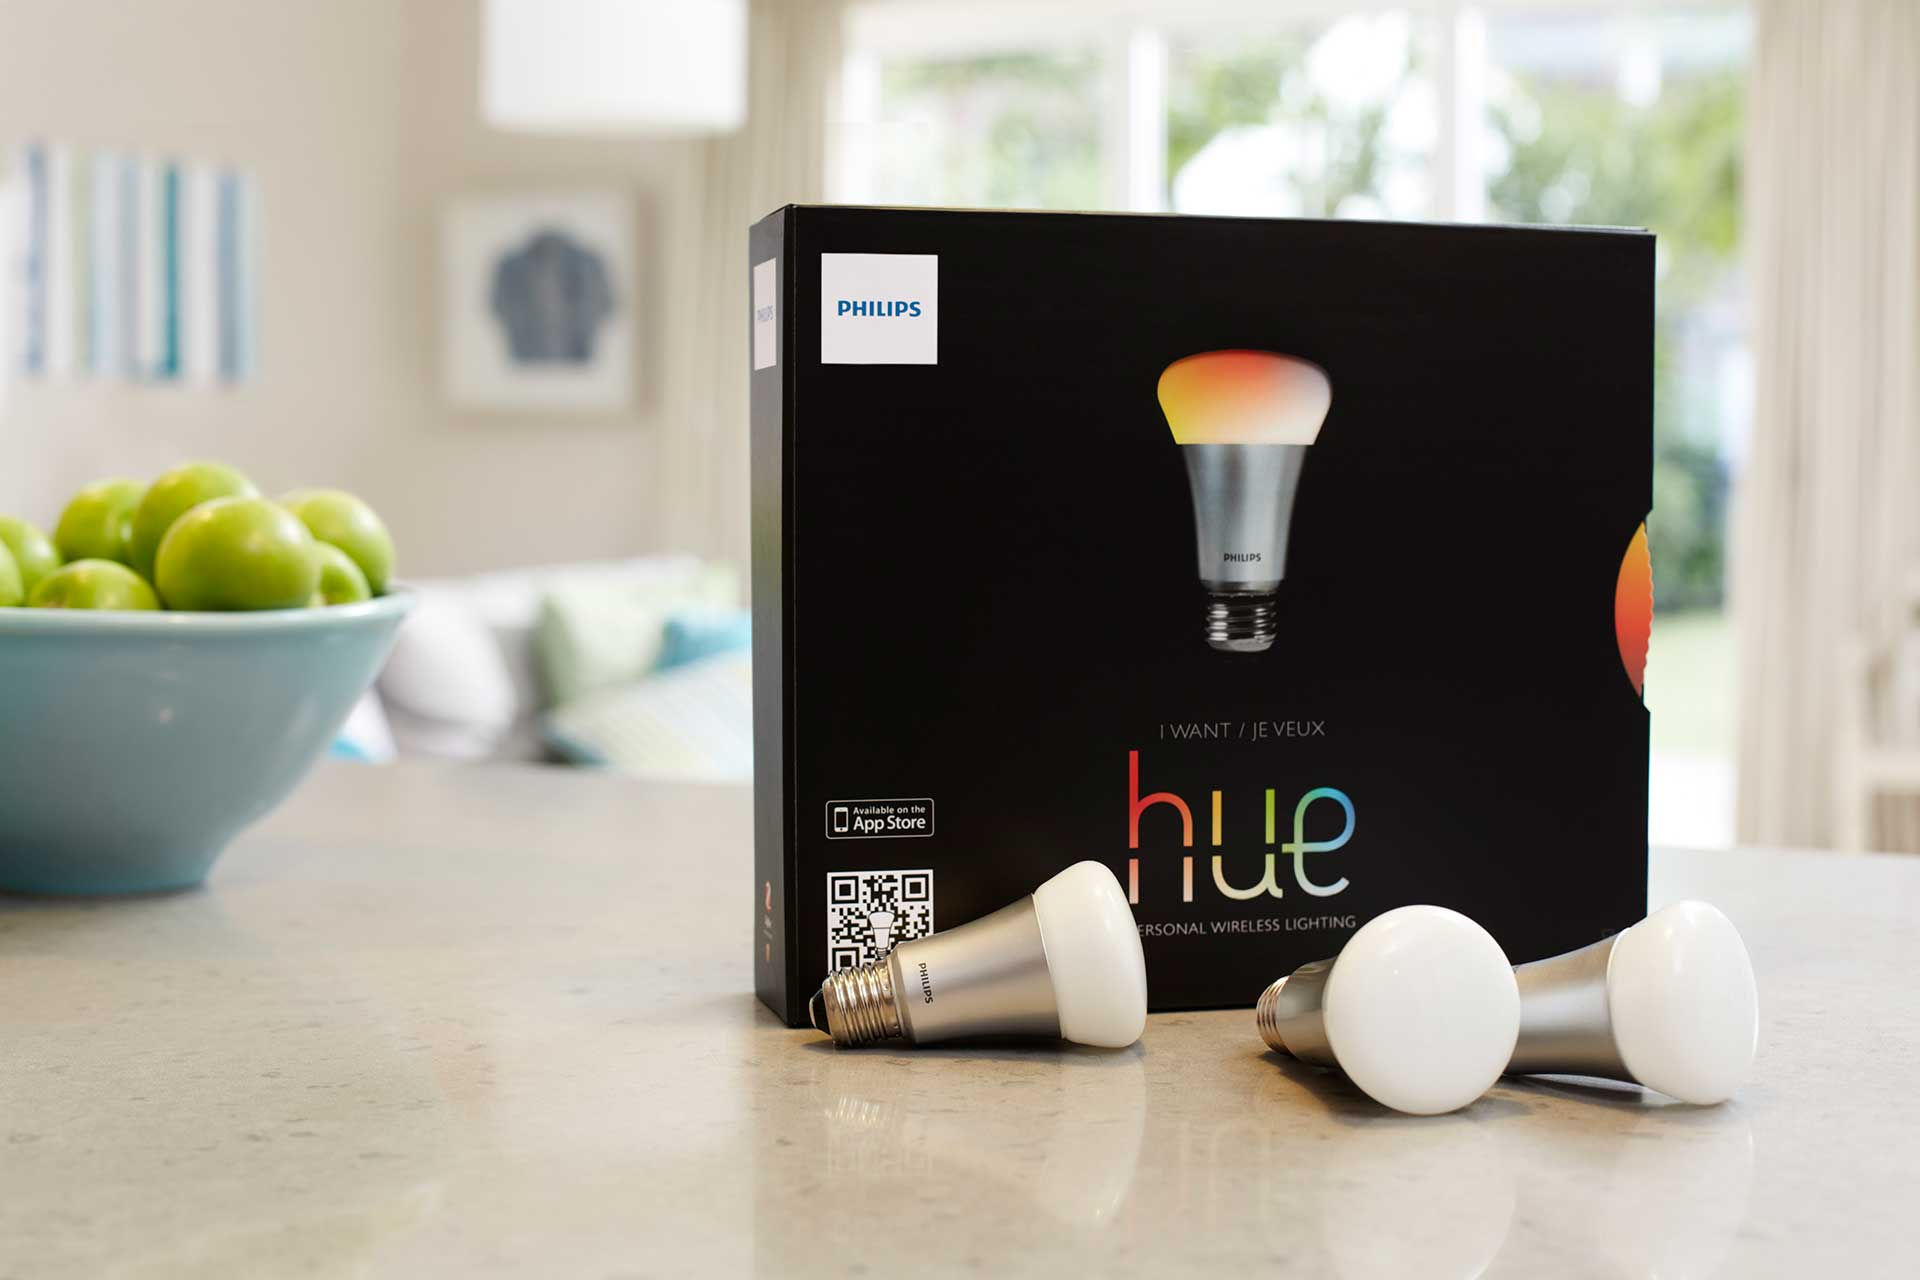 philips debuts open apis and an ios sdk for hue connected lighting system techcrunch. Black Bedroom Furniture Sets. Home Design Ideas